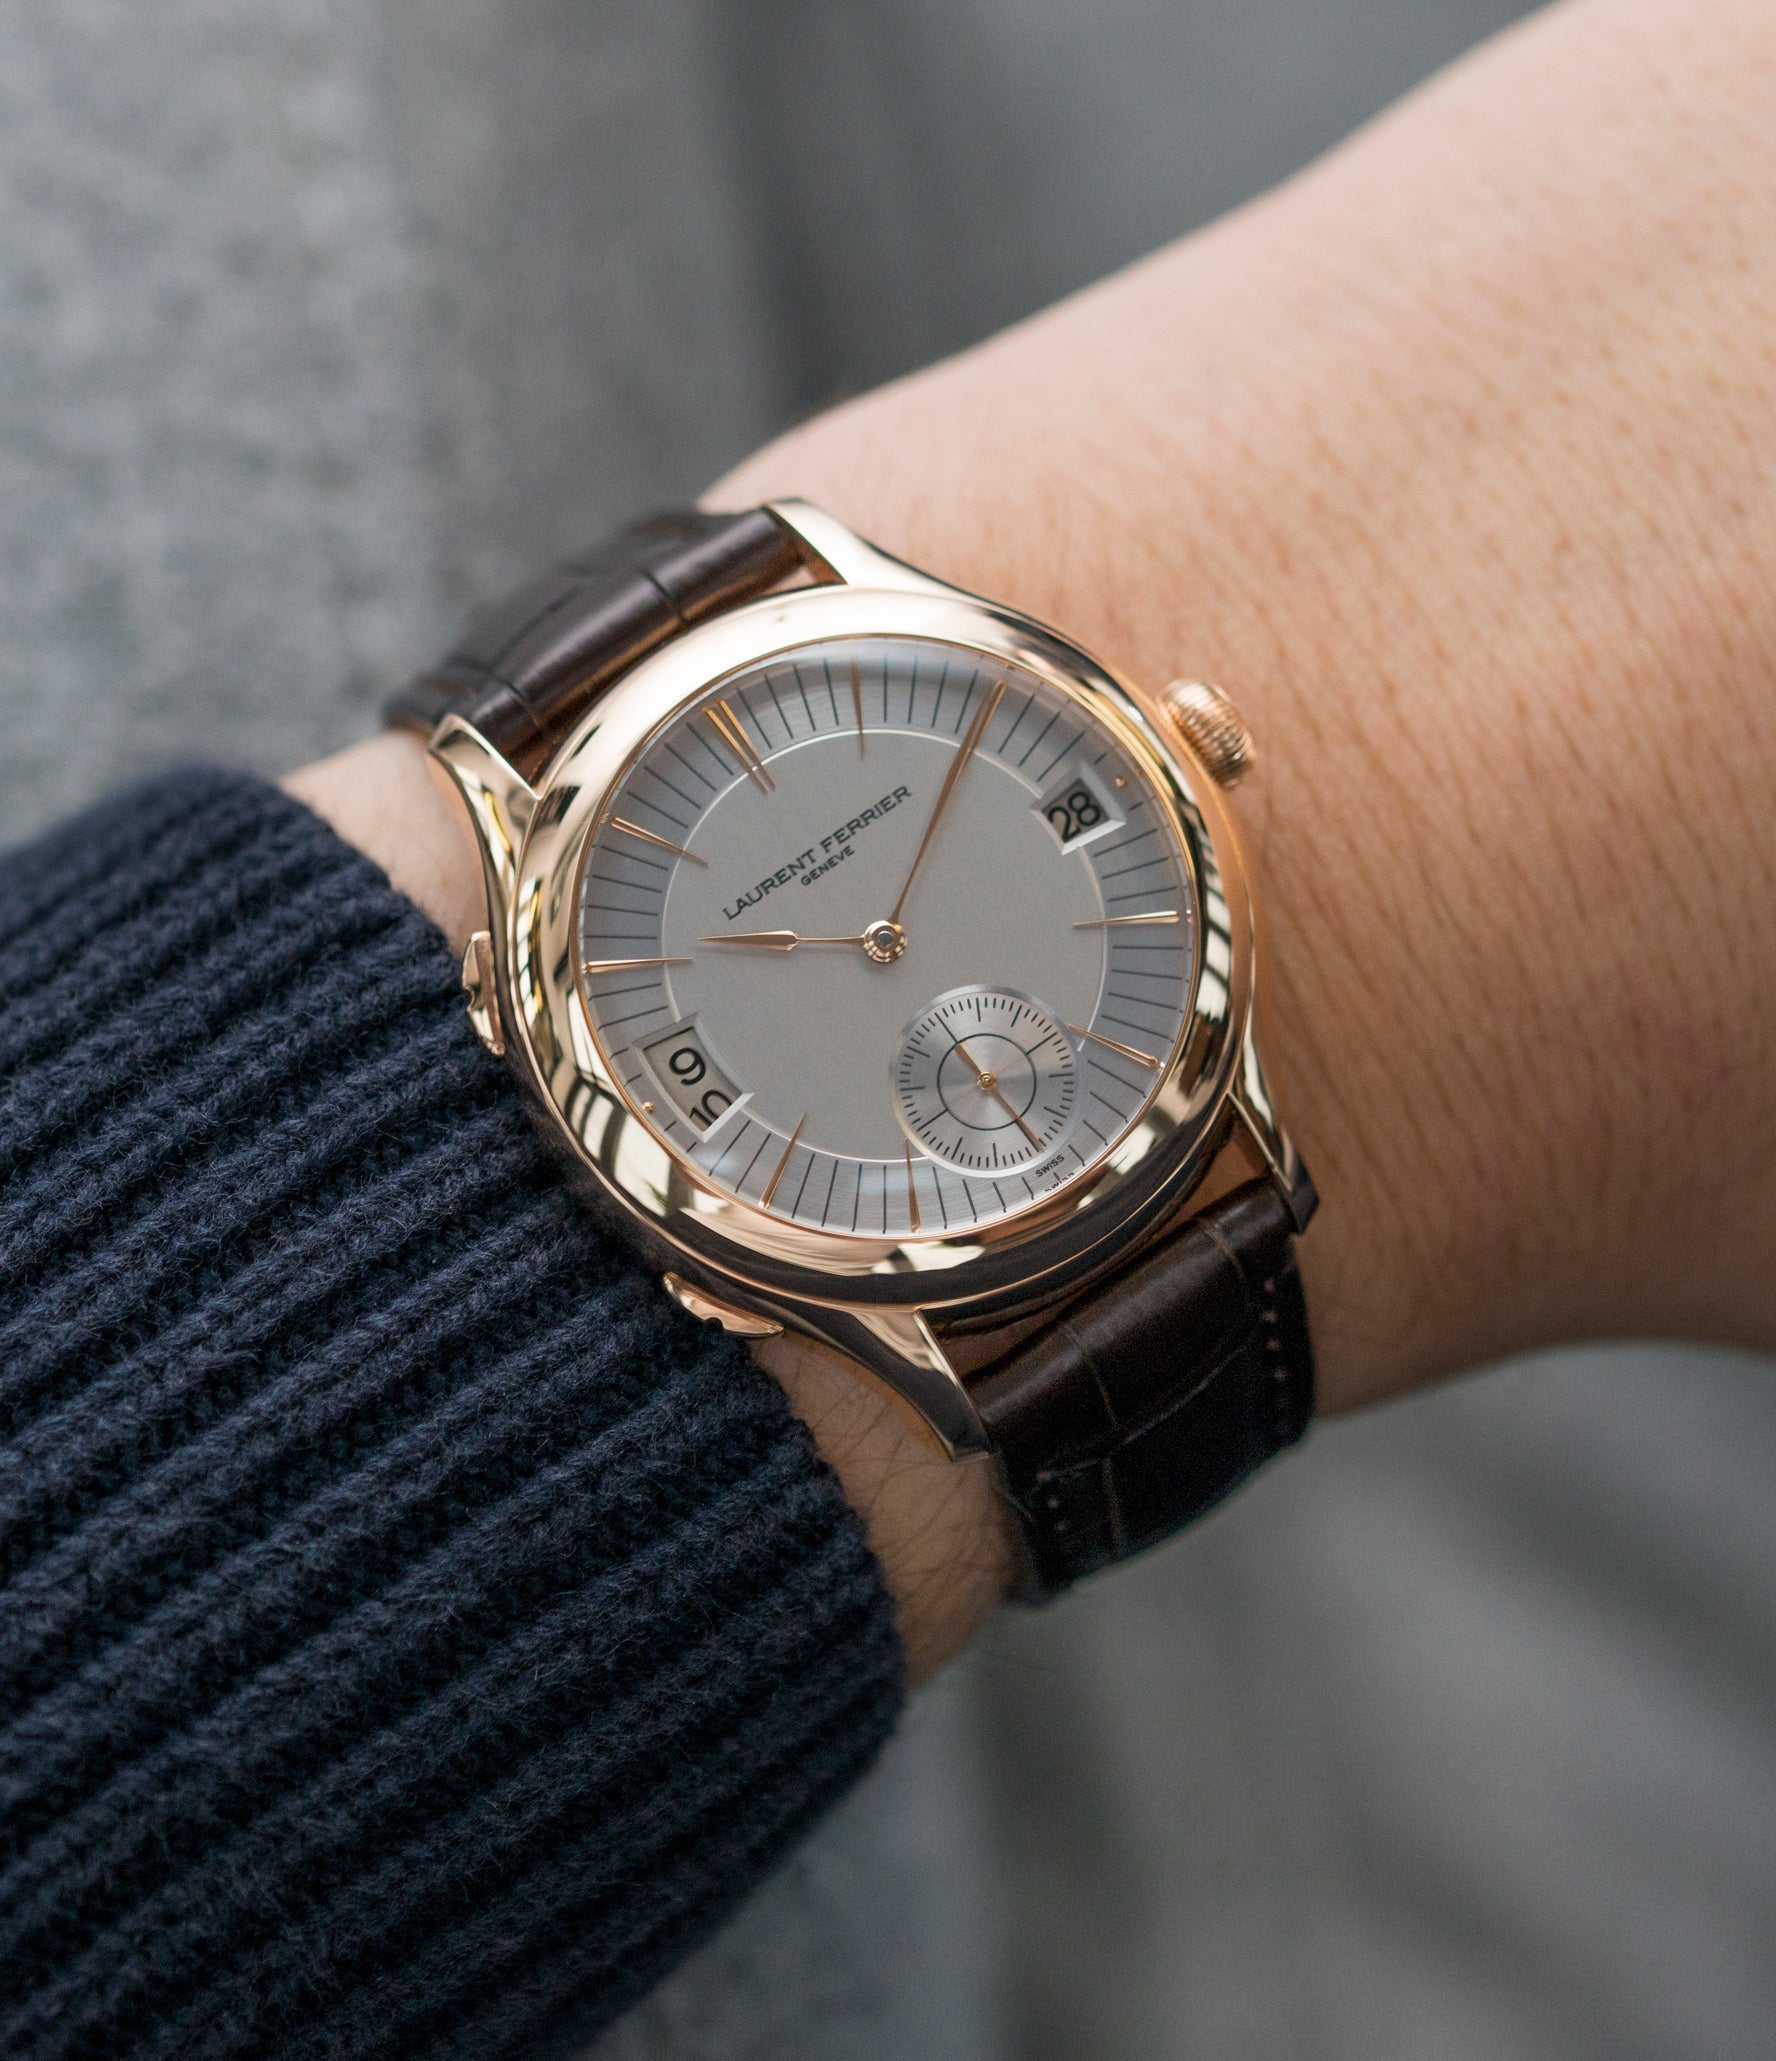 buy luxury wristwatch Laurent Ferrier Galet Traveller Micro Rotor LF 230.01 rose gold watch additional prototype dial for sale online at A Collected Man London UK approved reseller of preowned independent watchmakers